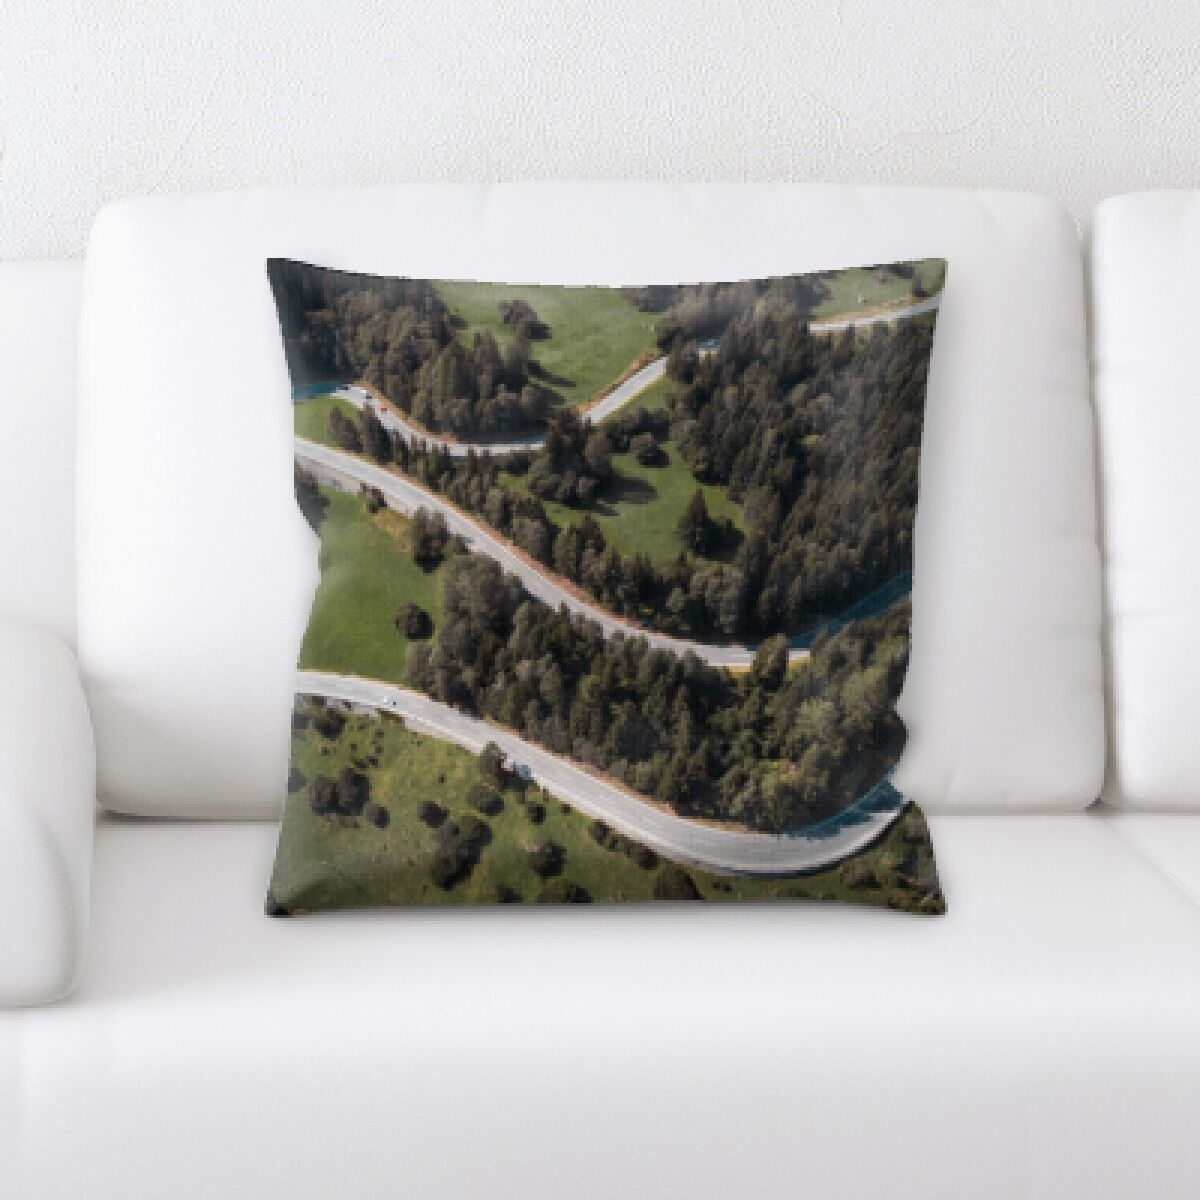 Ingerson A Road to Many Places (33) Throw Pillow